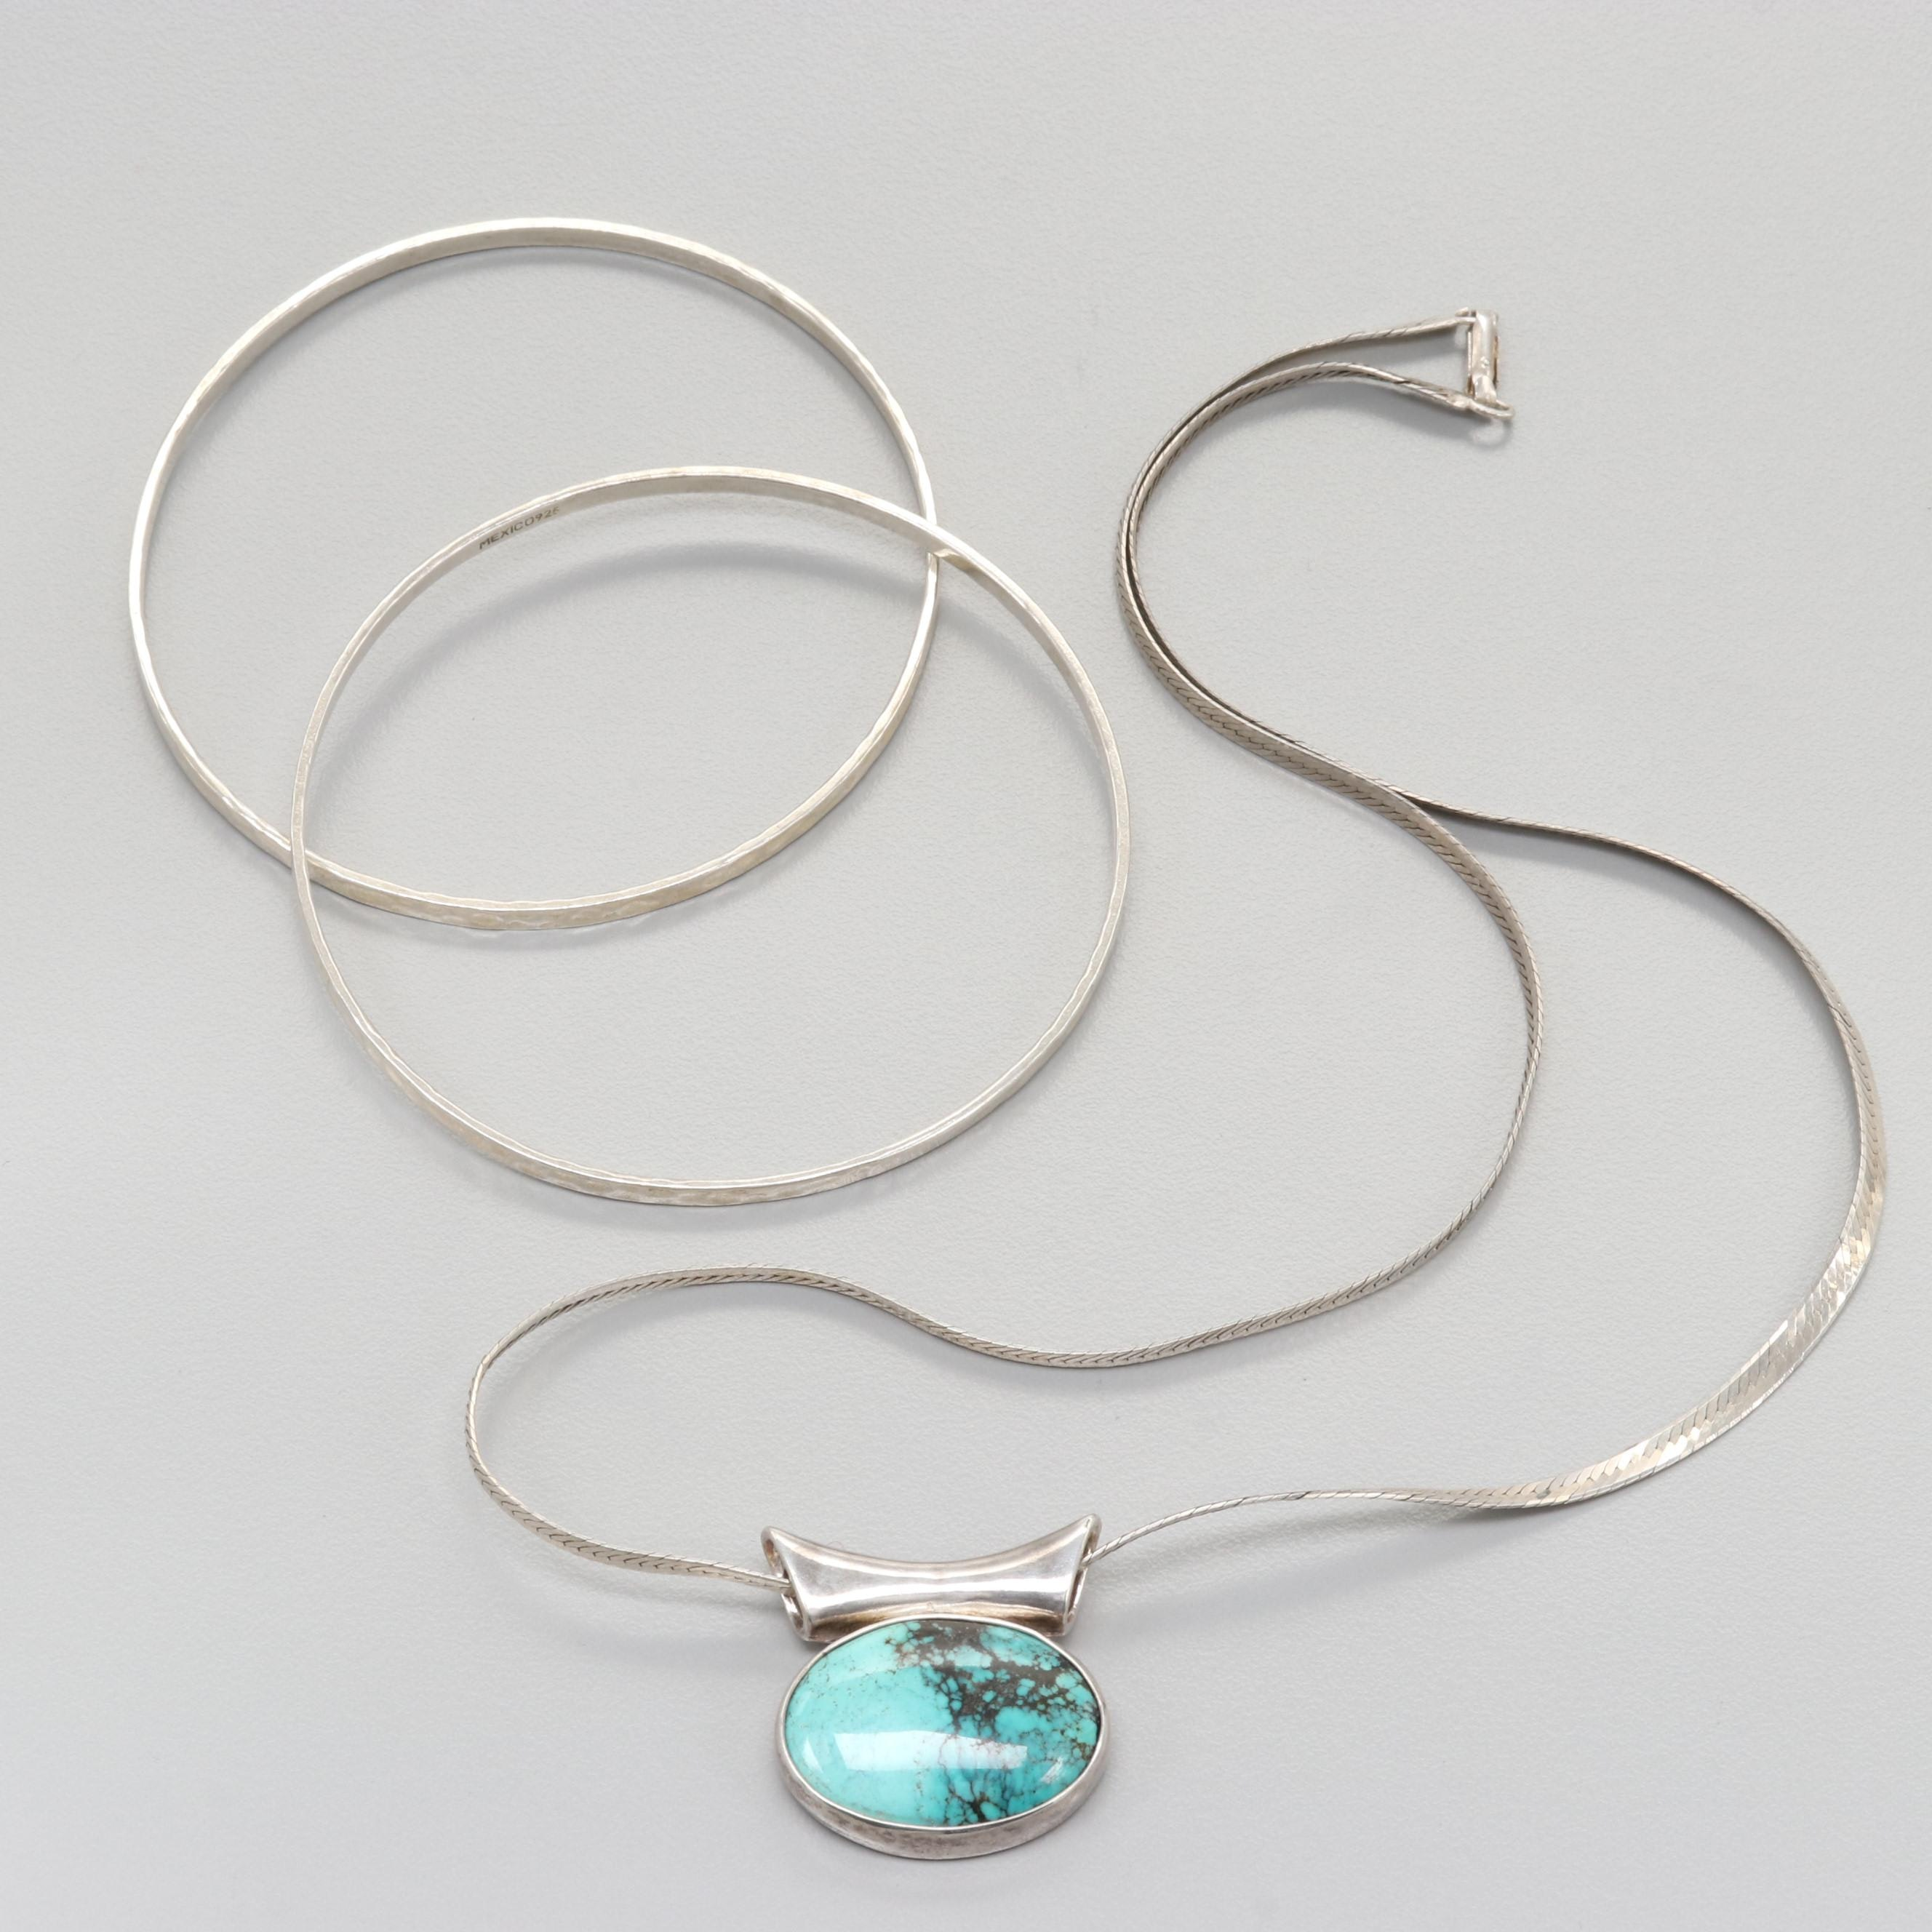 Sterling Silver Turquoise Necklace and Bracelets